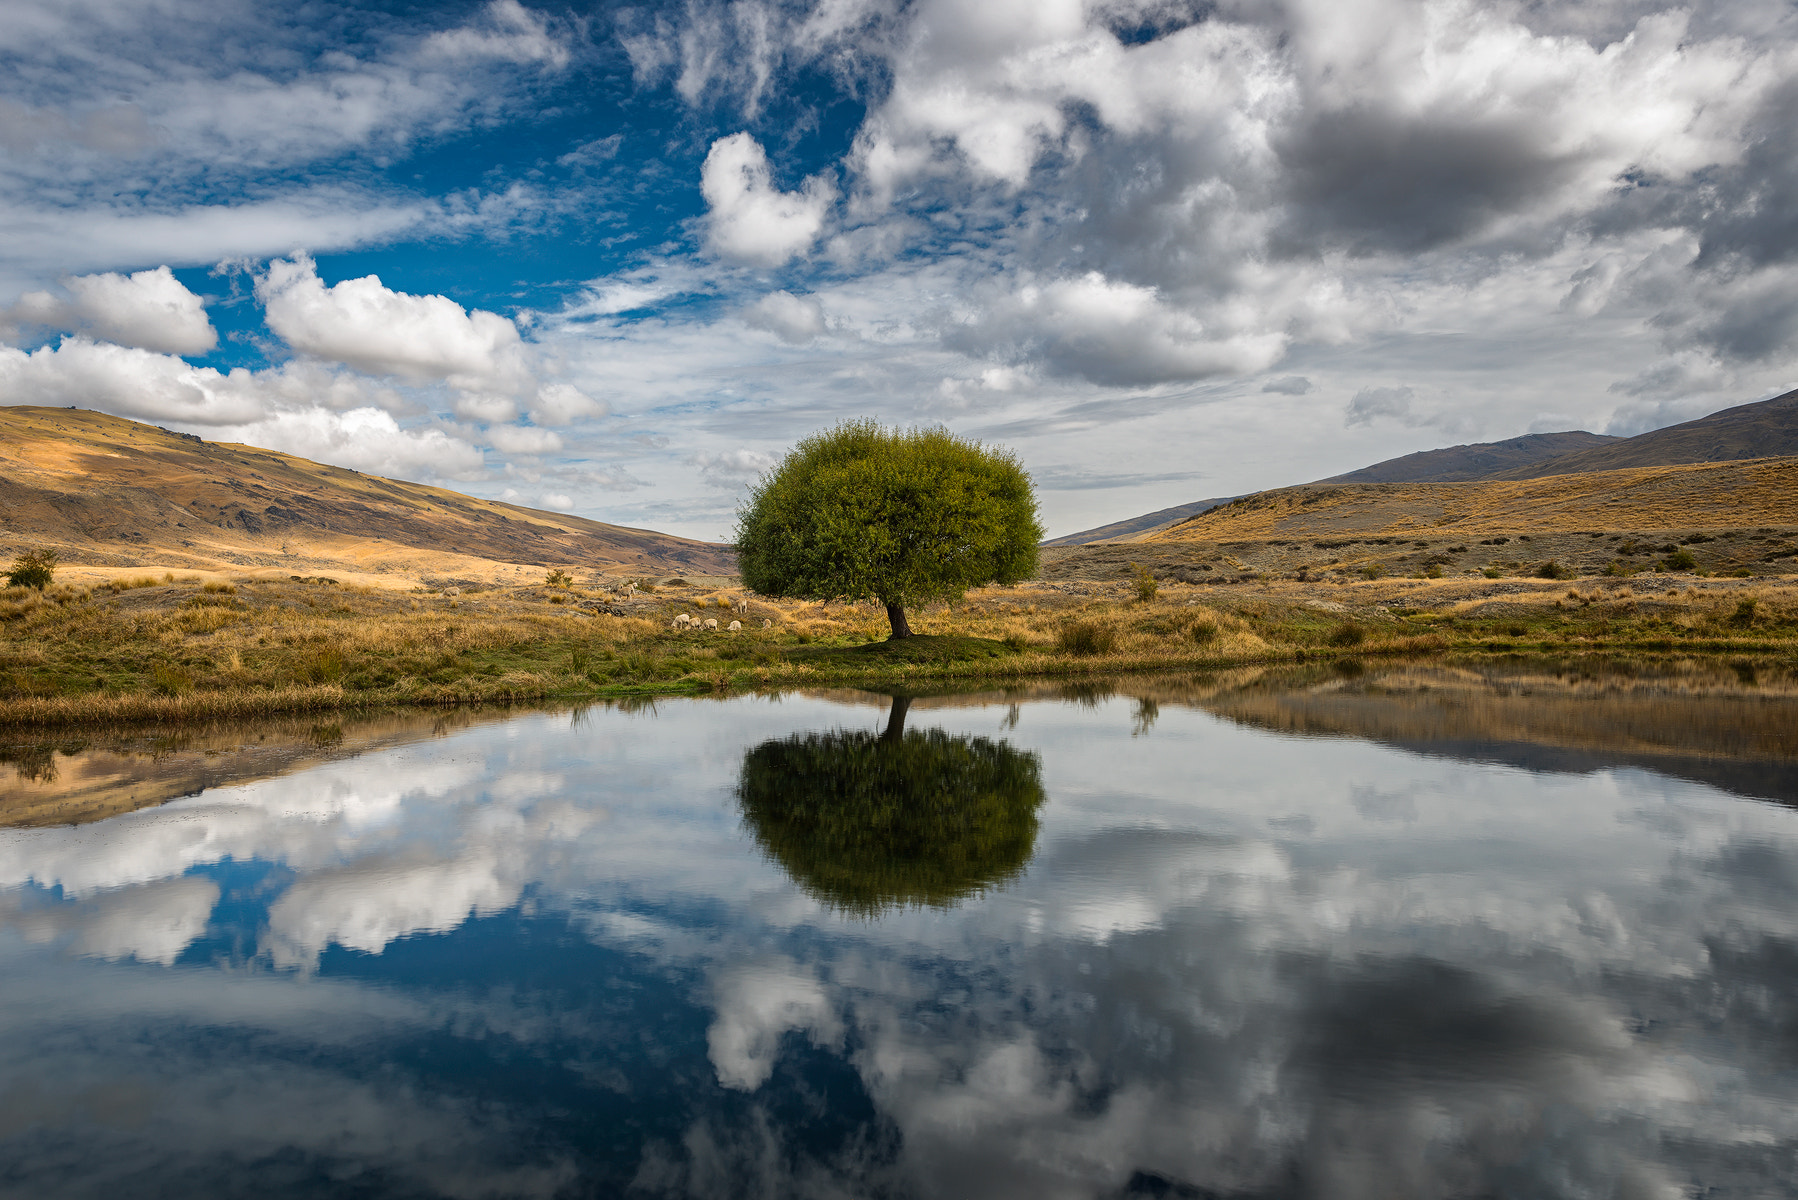 Photograph Nevis Lone Tree  by Danny Xeero on 500px